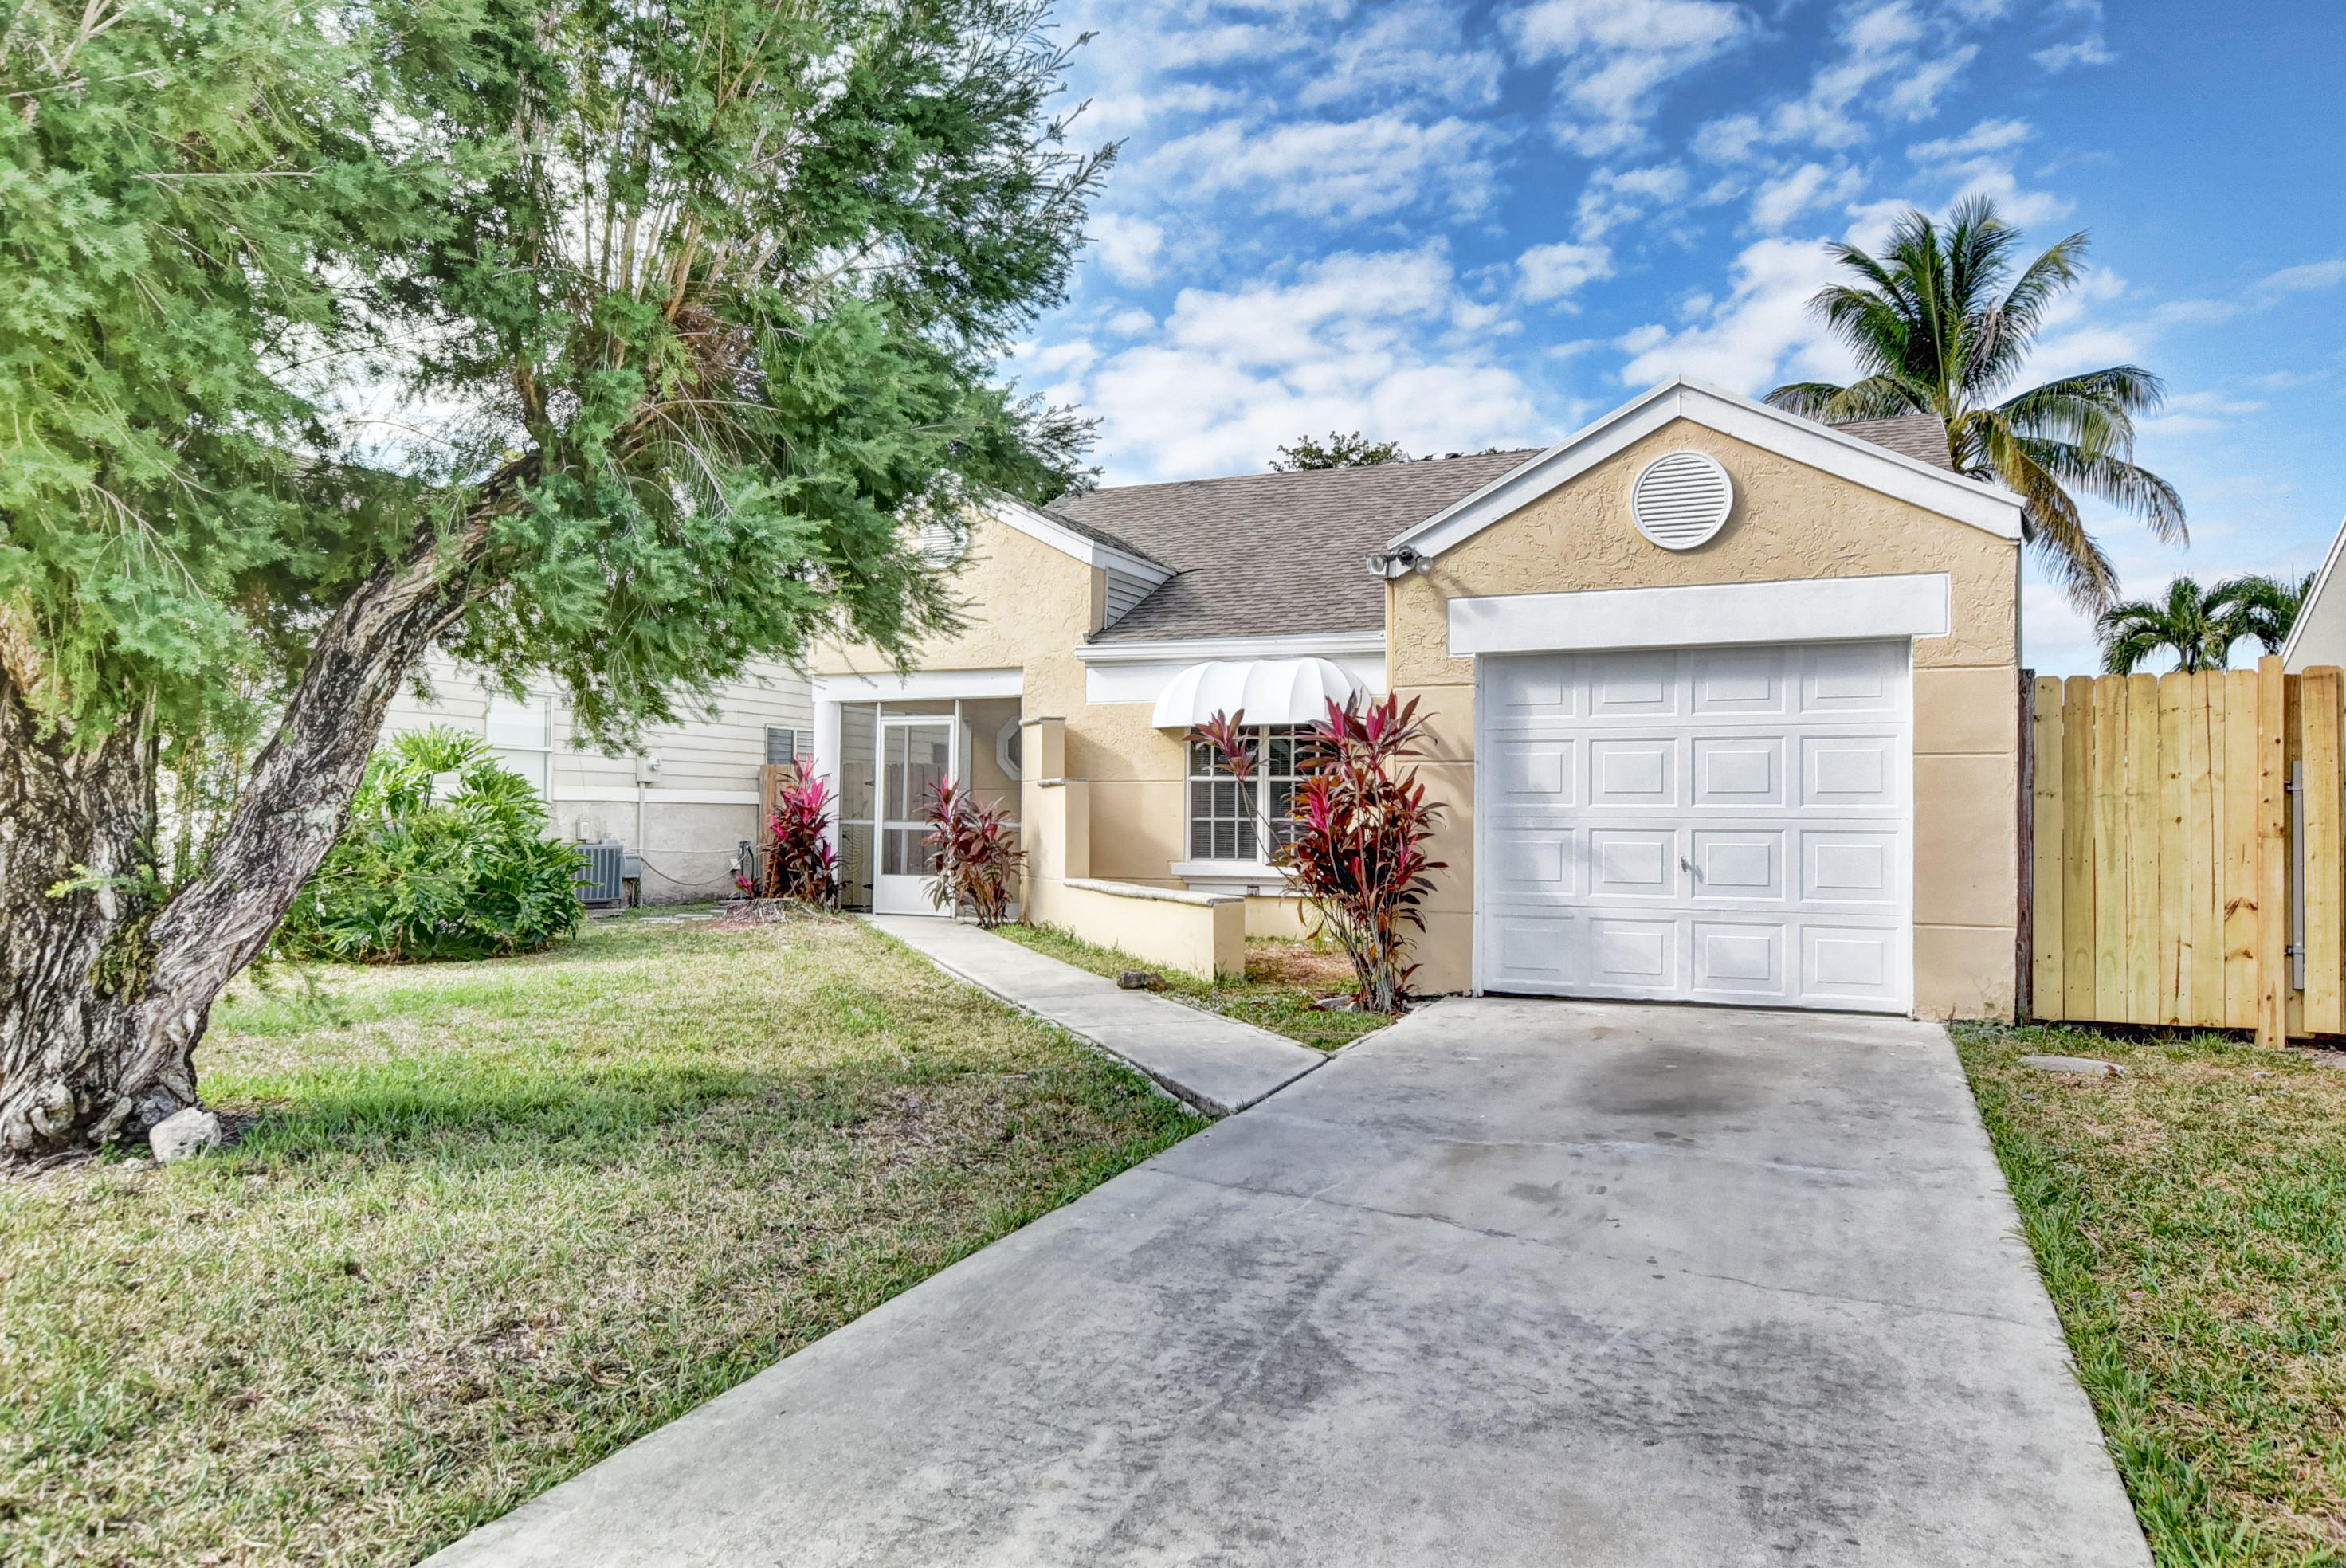 Home for sale in Trends Boca Raton Florida